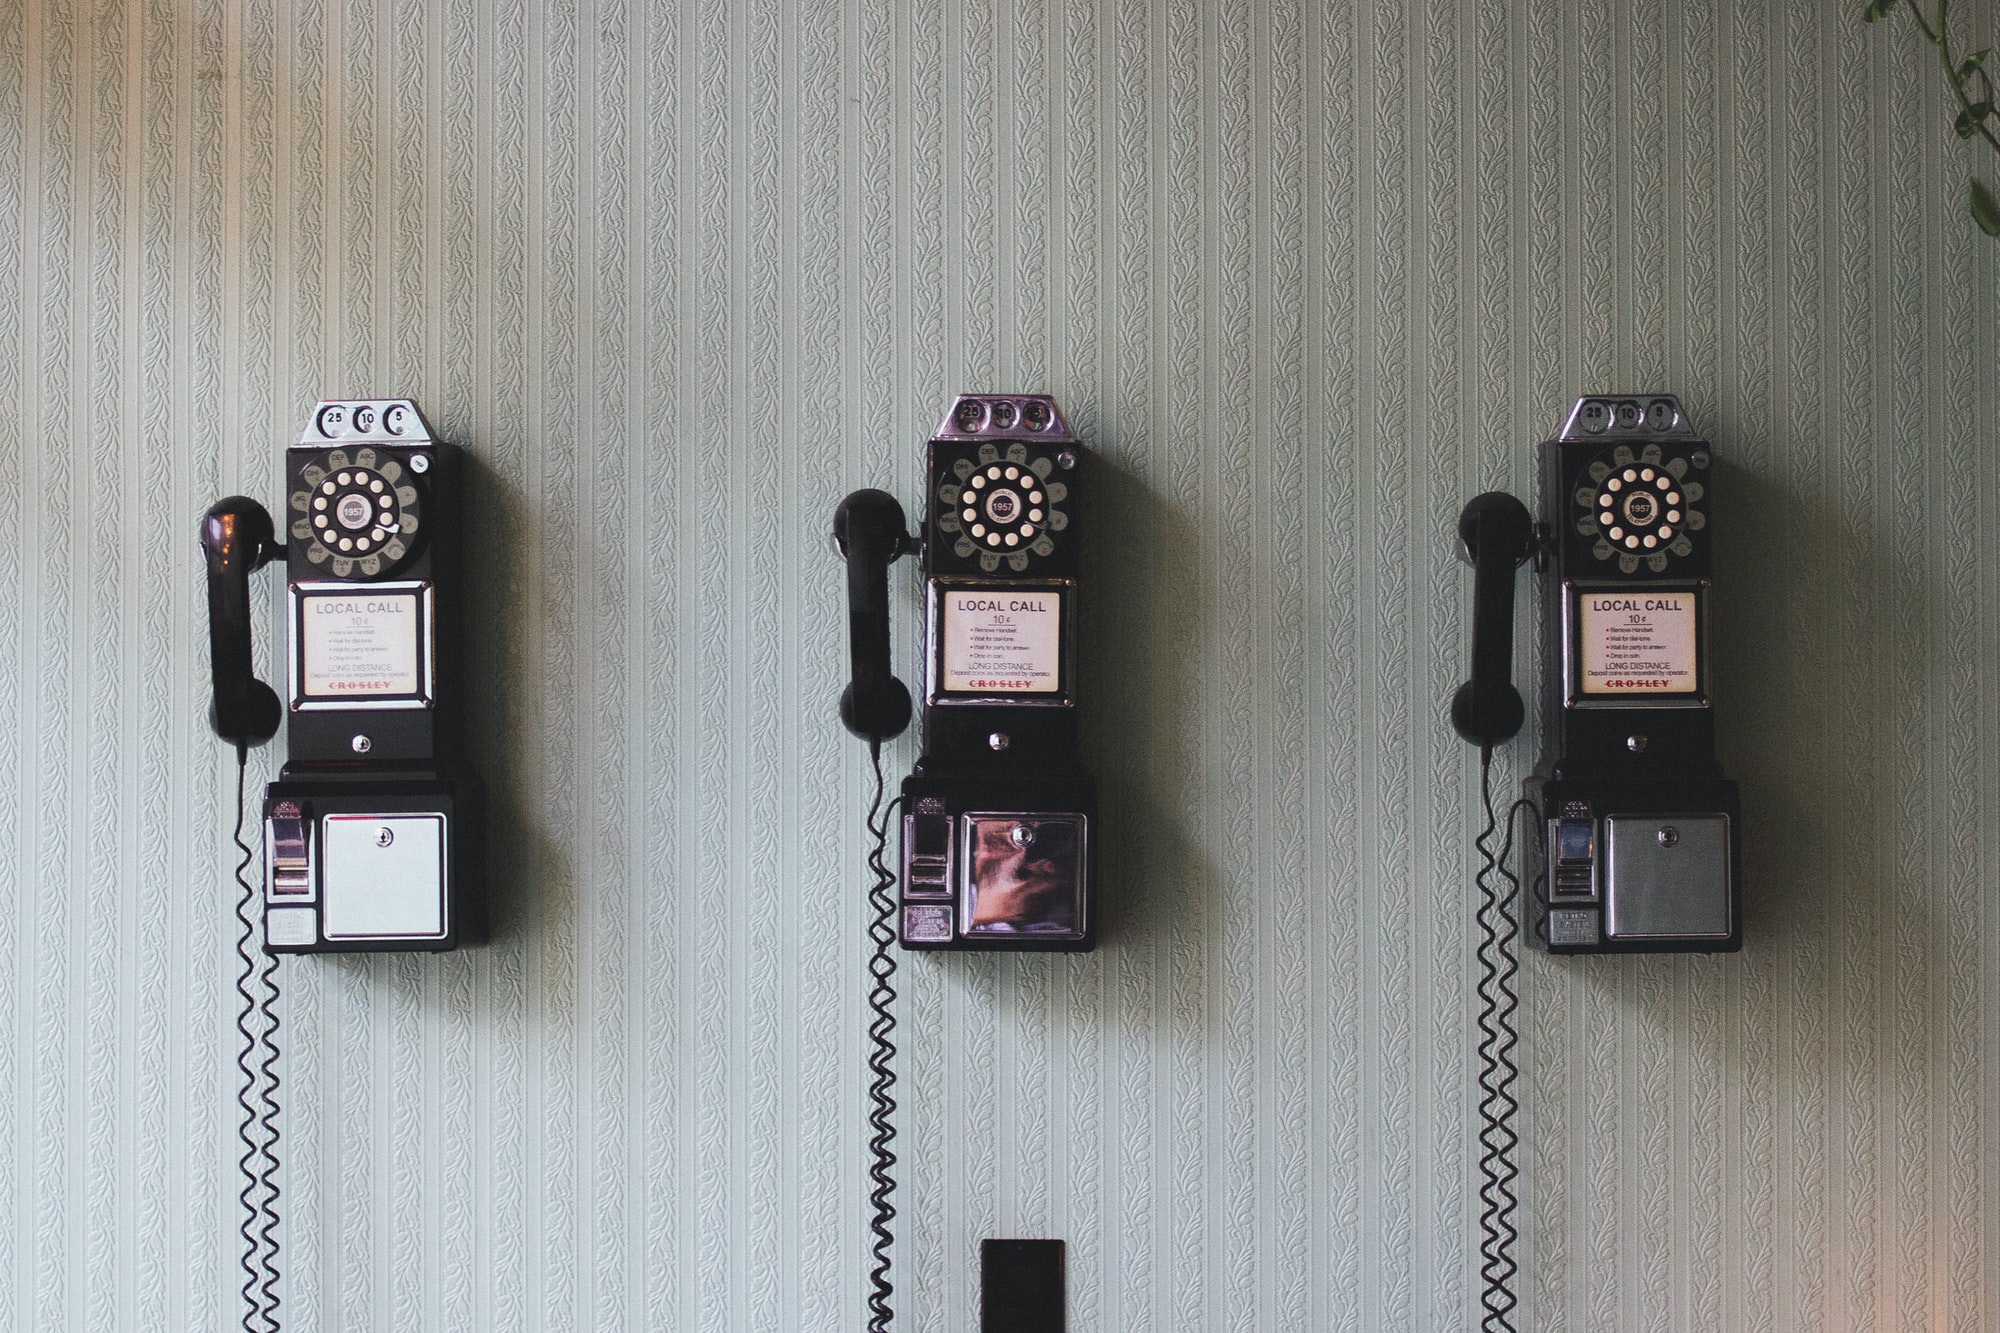 Image of three phone devices next to each other with a cord drilled into the wall.